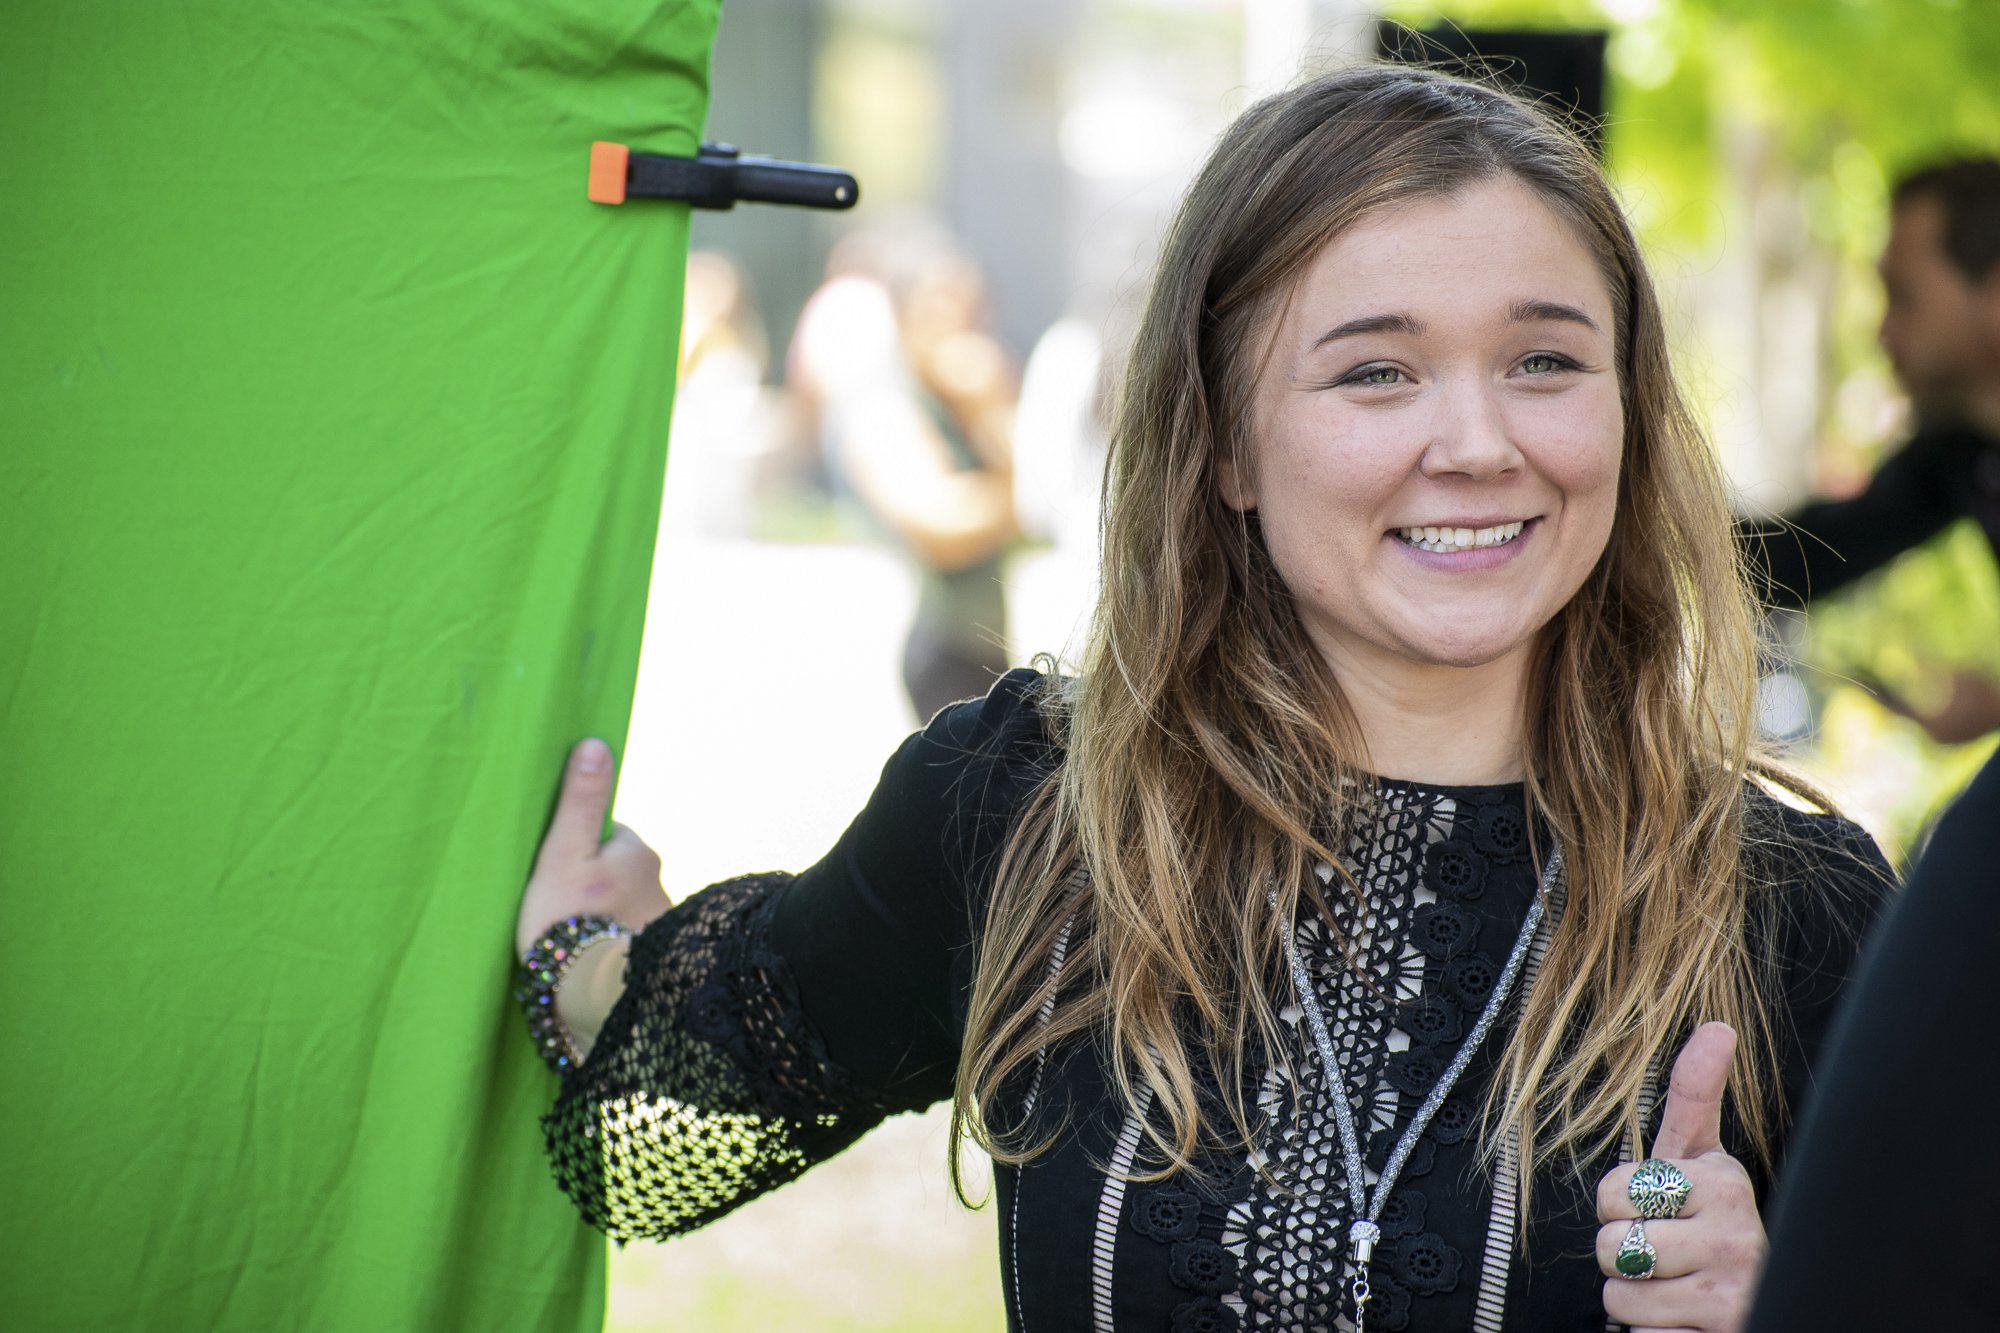 On the quad at Santa Monica College, Katharine Nilsen stands next to a green screen for Urban Mediamakers West during Club Row on Thursday, April 26, 2018 in Santa Monica, California. With over 60 clubs in attendance, the day is meant to encourage clubs to showcase what they've been doing over the semester for students. (Ethan Lauren/Corsair Photo)